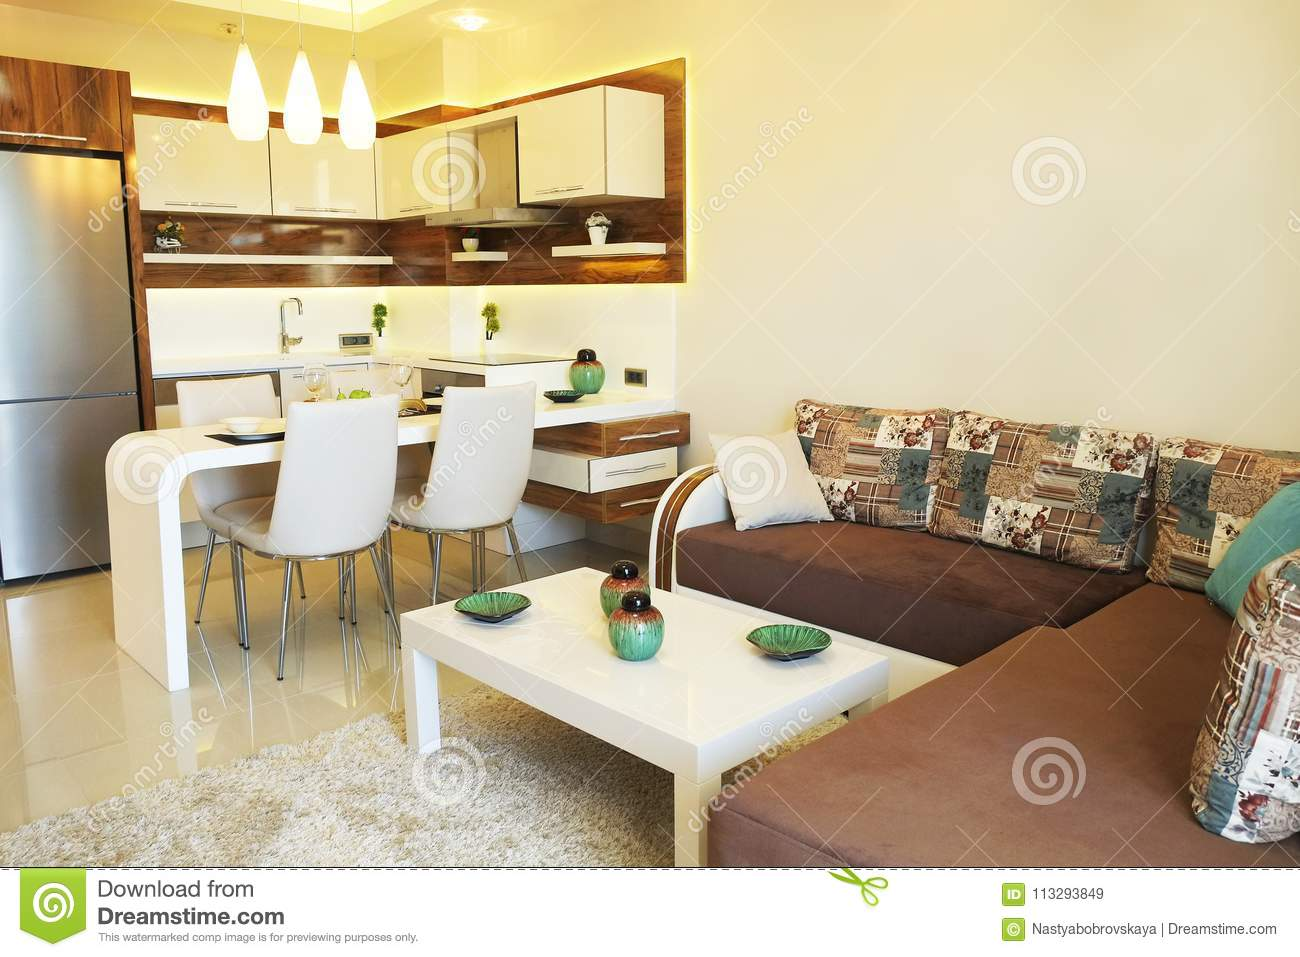 Beautiful Sun Side Appartment With Simple Minimalistic Modern Interior Design Open Plan Kitchen Living Room In Sunlight Stock Image Image Of Cabinets Northwest 113293849